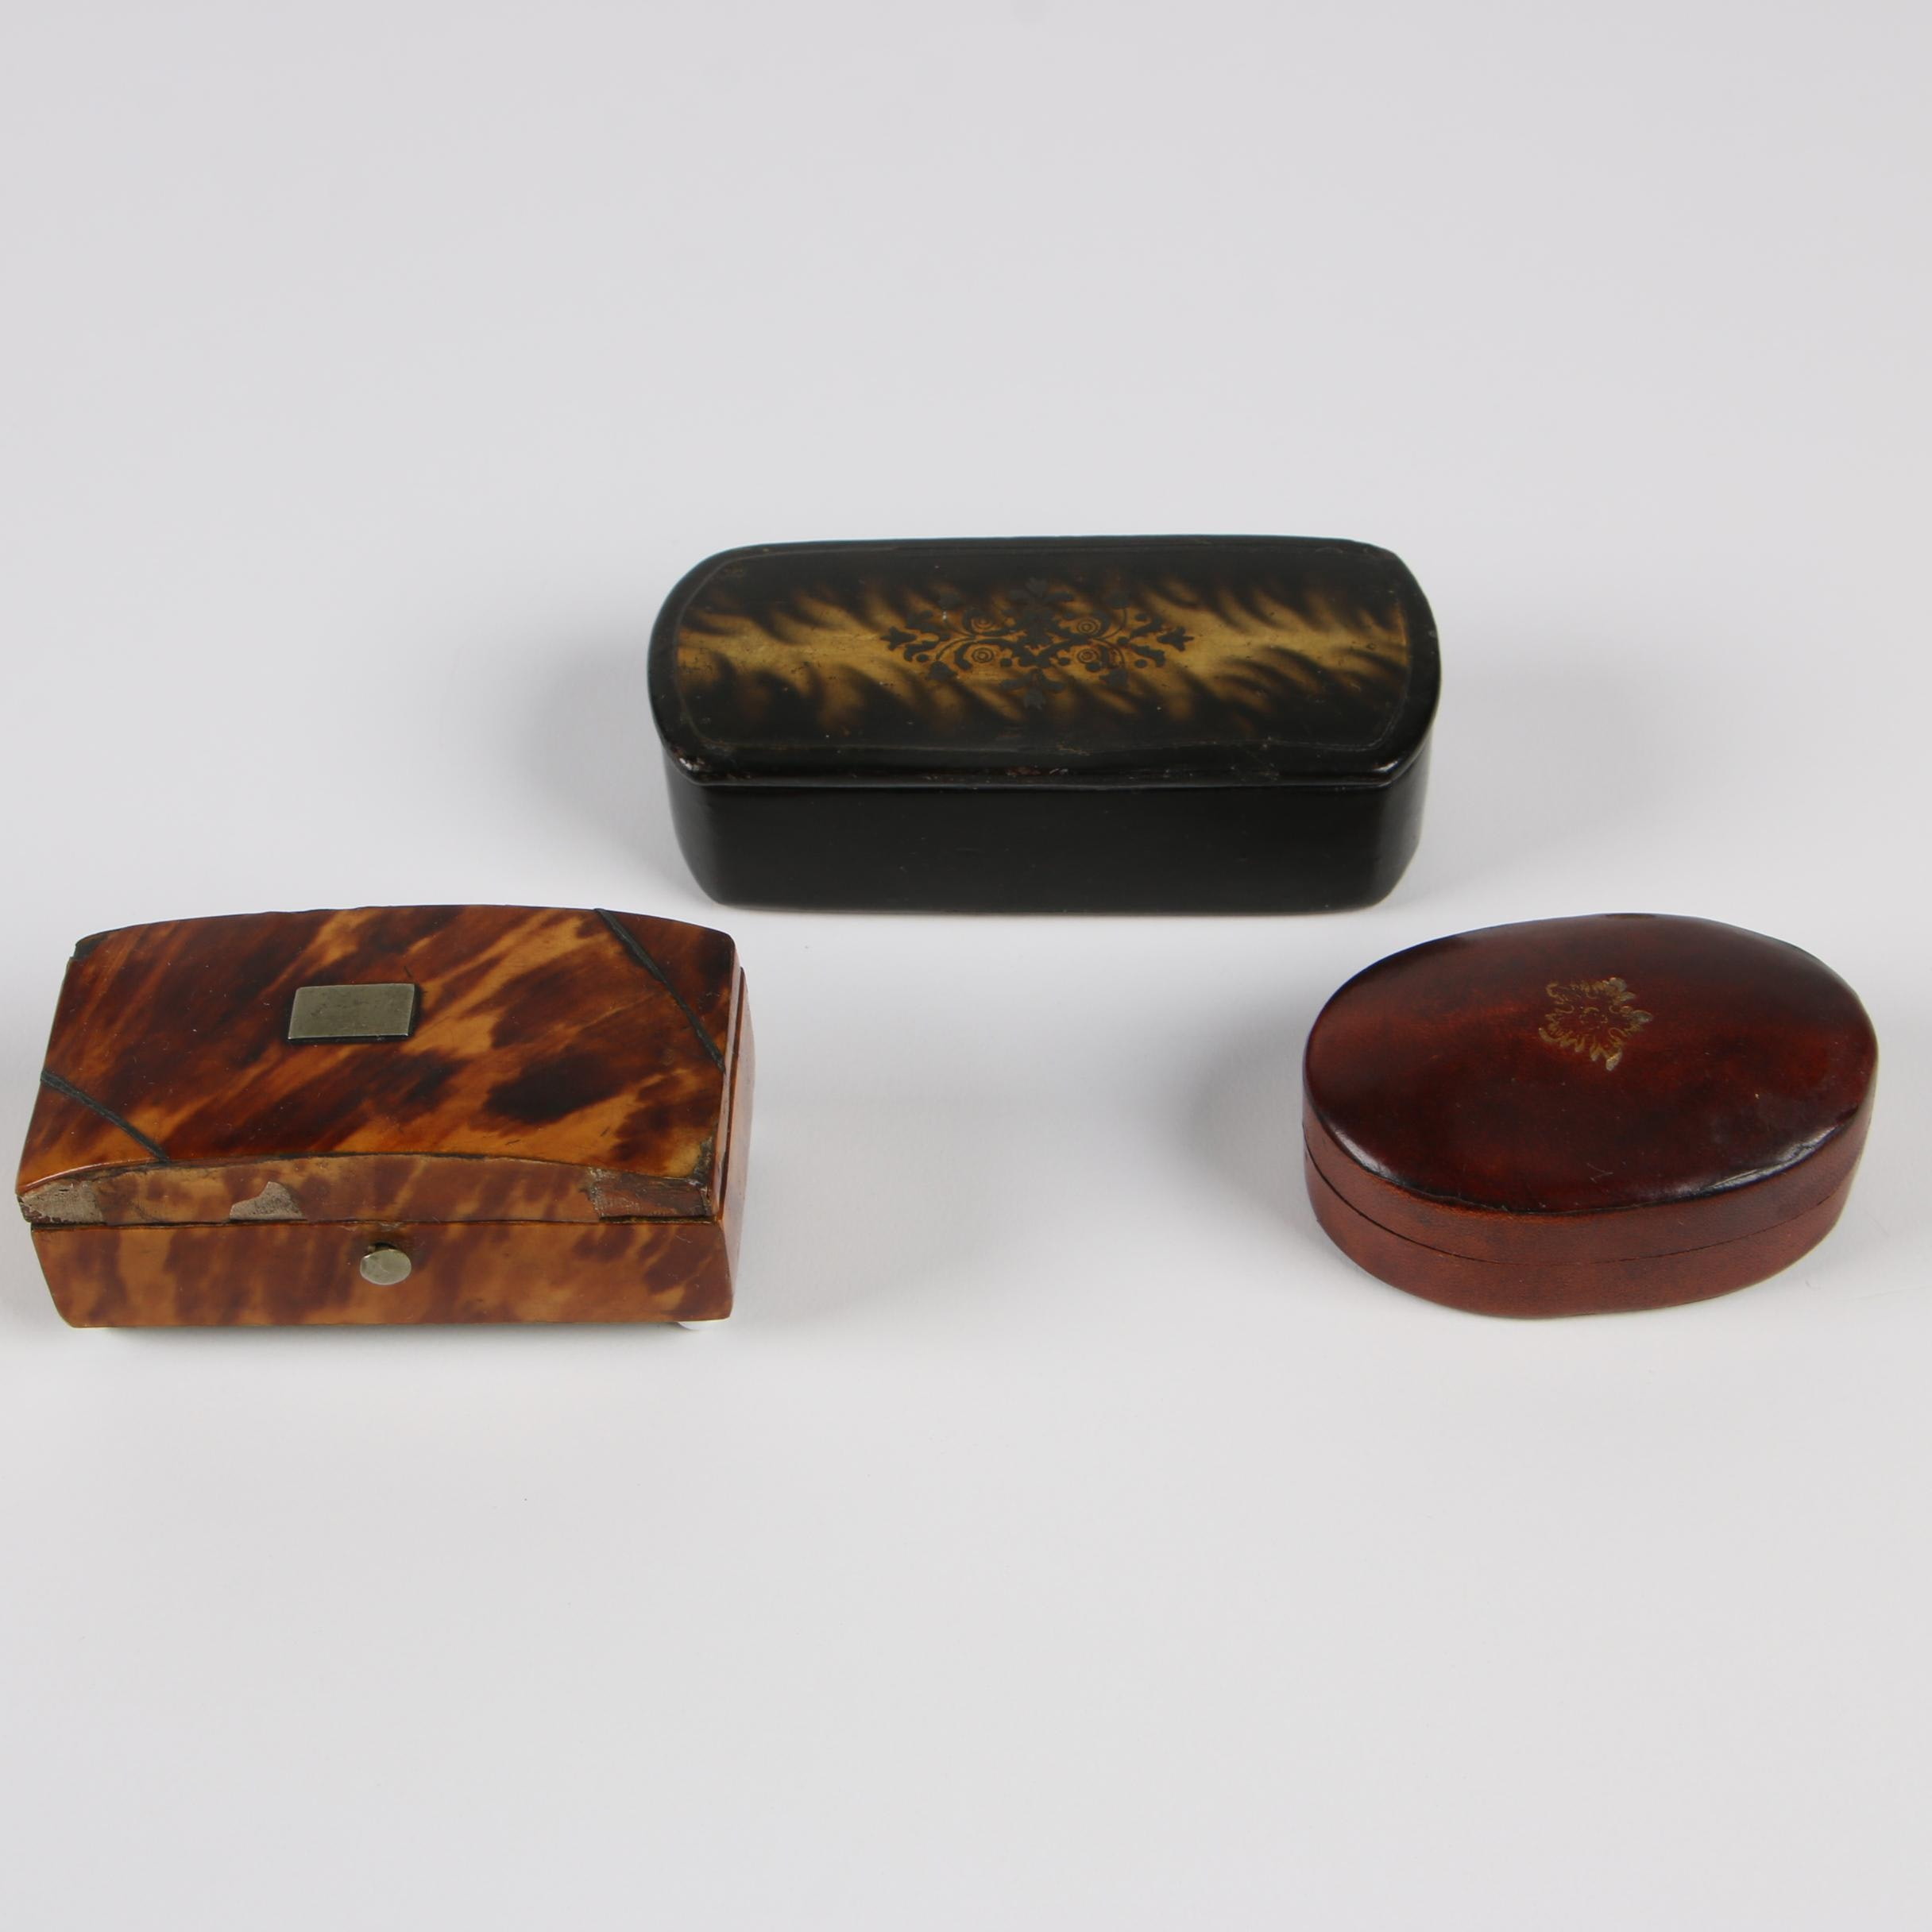 Papier-Mâché, Tortoiseshell Lacquer, and Leather Trinket Boxes, Late 19th C.